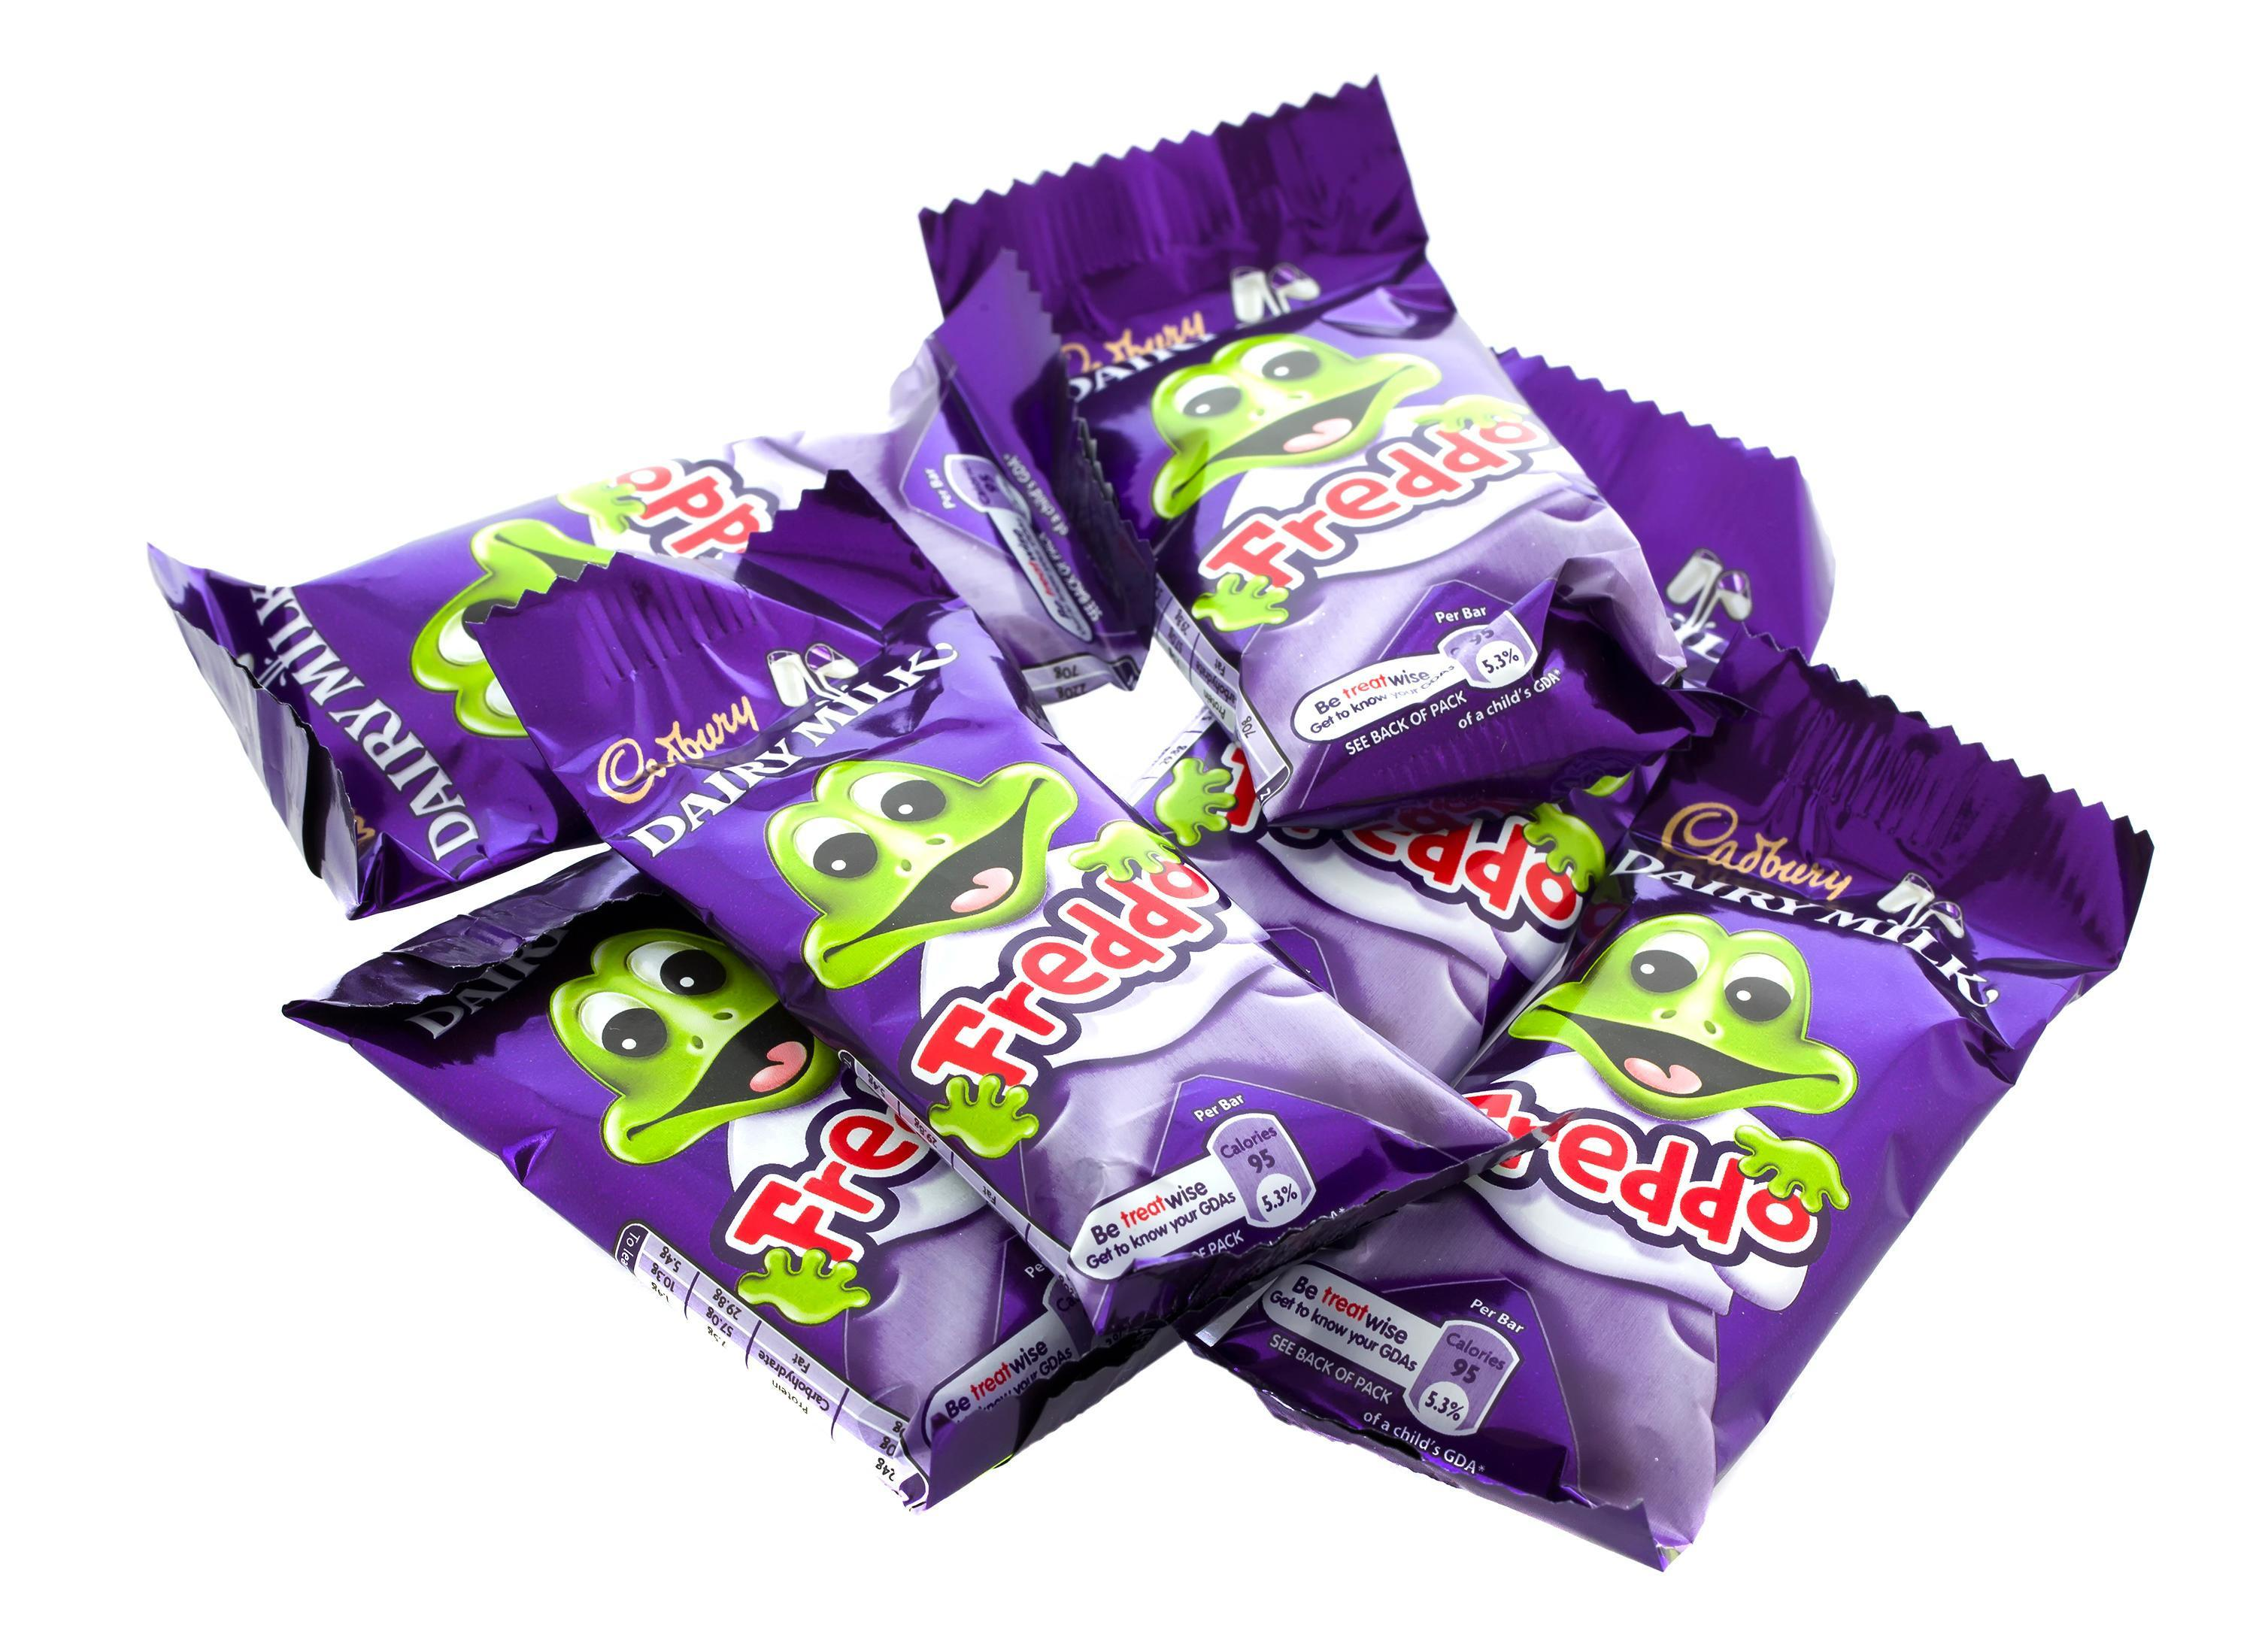 Freddo bar prices have surged 200% since 2000 – more than any other product